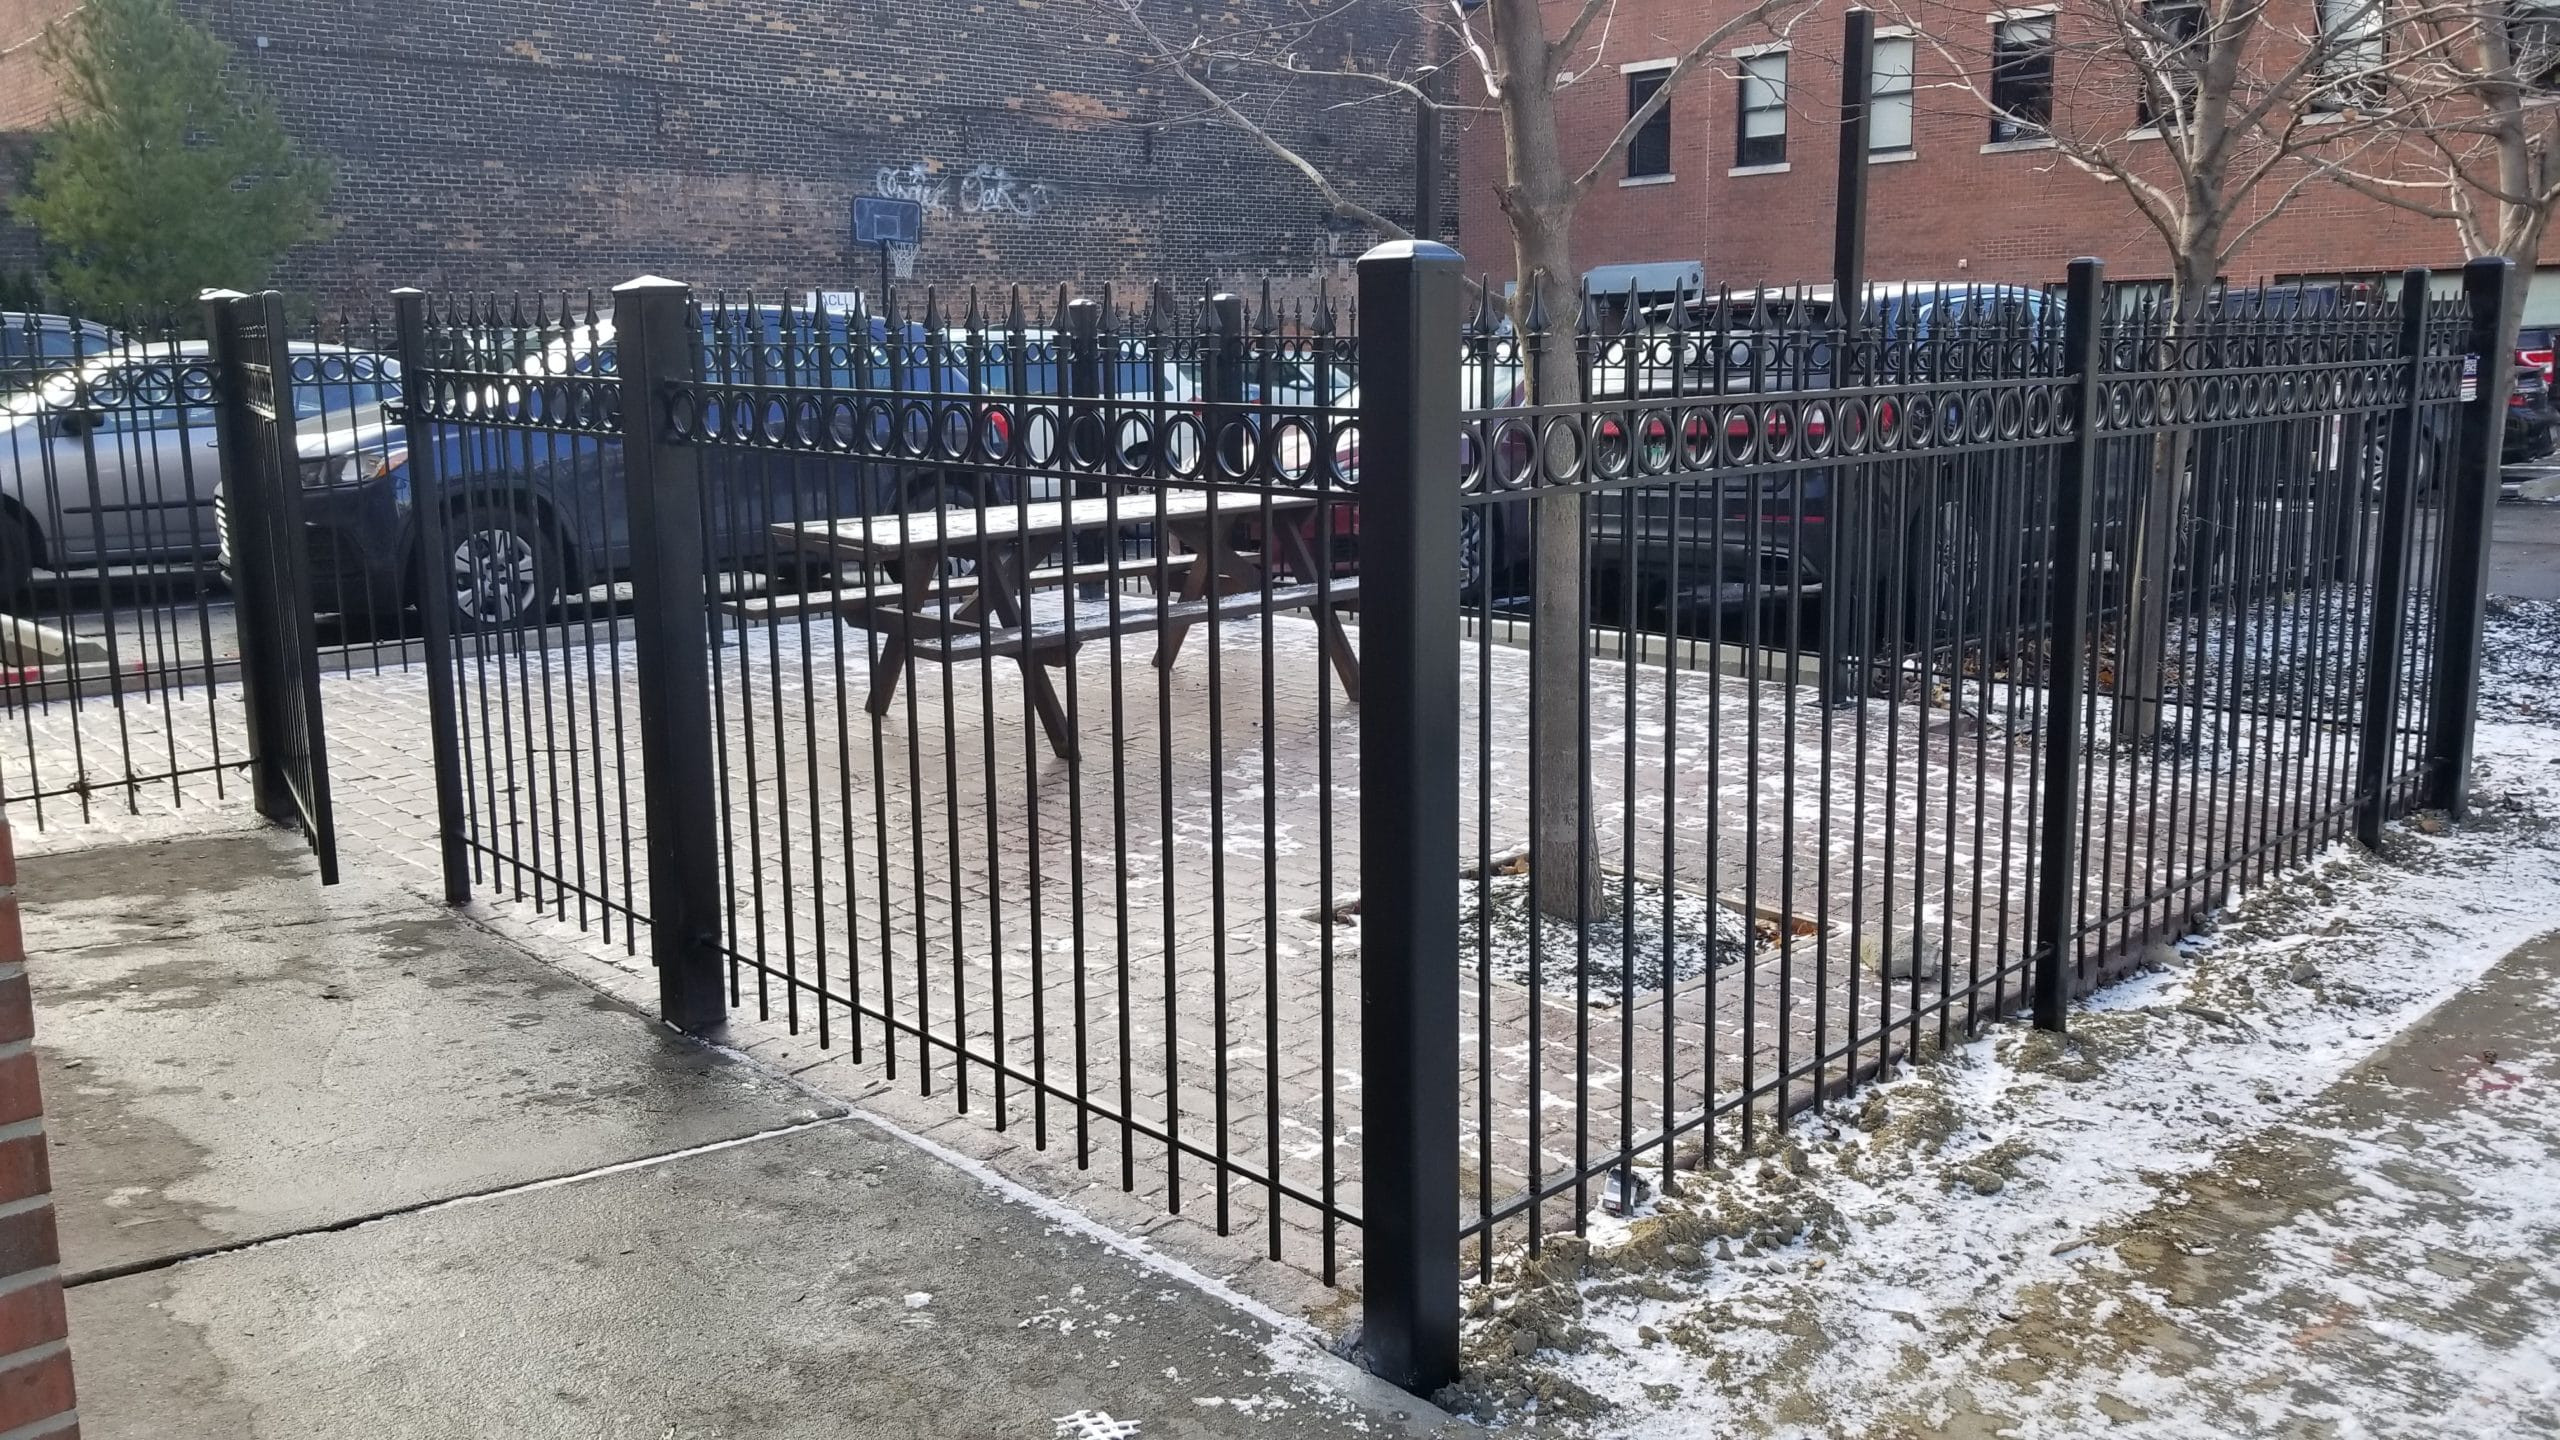 Image of commercial picket fencing in Metro Detroit, Michigan